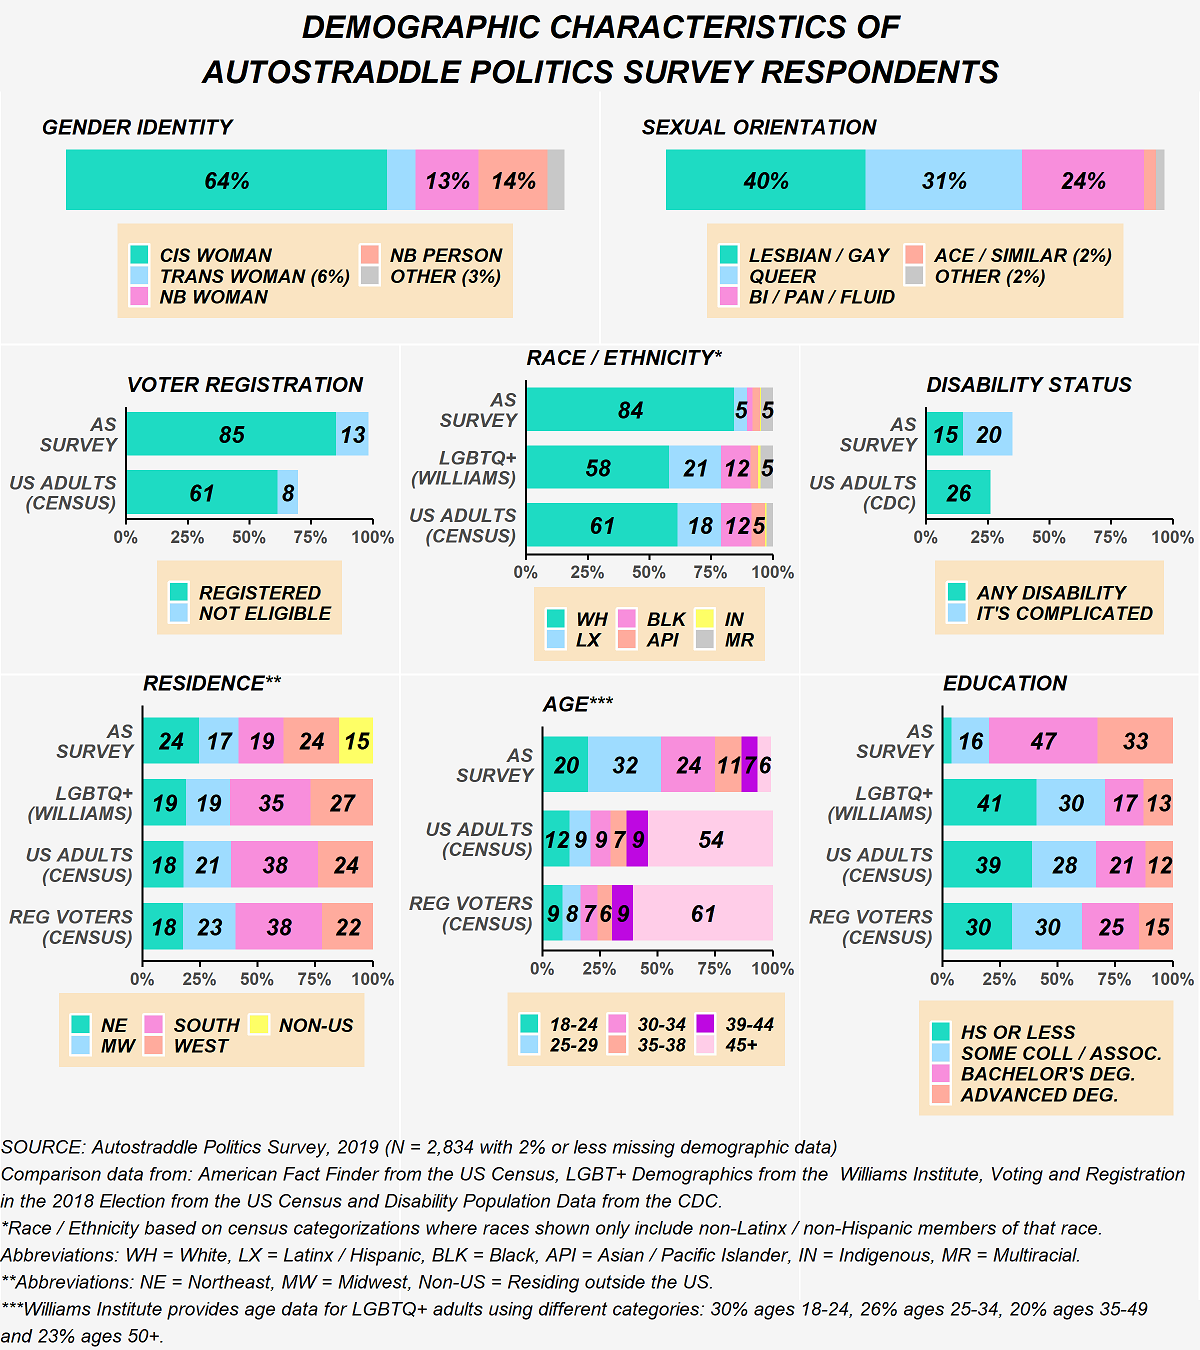 The chart shows the demographic characteristics of the 2,834 respondents of Autostraddle's Politics Survey. Gender identity: 64% cis women, 6% trans women, 13% non-binary women, 14% non-binary people and 3% other gender. Sexual orientation: 40% lesbian / gay, 31% queer, 24% bisexual / pansexual / sexually fluid, 2% Ace / similar and 2% other sexual orientation. Voter registration, among AS survey respondents: 85% registered to vote and 13% not eligible. Voter registration, among US adults using census data: 61% registered to vote and 8% not eligible. Race / ethnicity is based on census categorizations where races shown only include non-Latinx / non-Hispanic members of that race. Race / ethnicity among AS survey respondents: 84% white, 5% Latinx, 5% multiracial and other races are too low to report. Race / ethnicity among LGBTQ+ adults using Williams Institute data: 58% white, 21% Latinx, 12% black, 5% multiracial and other races are too low to report. Race / ethnicity among US adults using census data: 61% white, 18% Latinx, 12% black, 5% Asian / Pacific Islander and other races are too low to report. Disability status among AS survey respondents: 15% living with a disability and 20% said it's complicated. Disability status among US adults using CDC data: 26% living with a disability. Residence, among AS survey respondents: 24% northeast, 17% midwest, 19% south, 24% west, 15% non-US. Residence, among, LGBTQ+ adults using Williams Institute data: 19% northeast, 19% midwest, 35% south, 27% west. Residence, among US adults using census data: 18% northeast, 21% midwest, 38% south, 24% west. Residence, among registered voters using census data: 18% northeast, 23% midwest, 38% south, 22% west. Age, among AS survey respondents: 20% 18-24, 32% 25-29, 24% 30-34, 11% 35-38, 7% 39-44, 6% 45+. Age, among US adults using census data: 12% 18-24, 9% 25-29, 9% 30-34, 7% 35-38, 9% 39-44, 54% 45+. Age, among registered voters using census data: 9% 18-24, 8% 25-29, 7% 30-34, 6% 35-38,